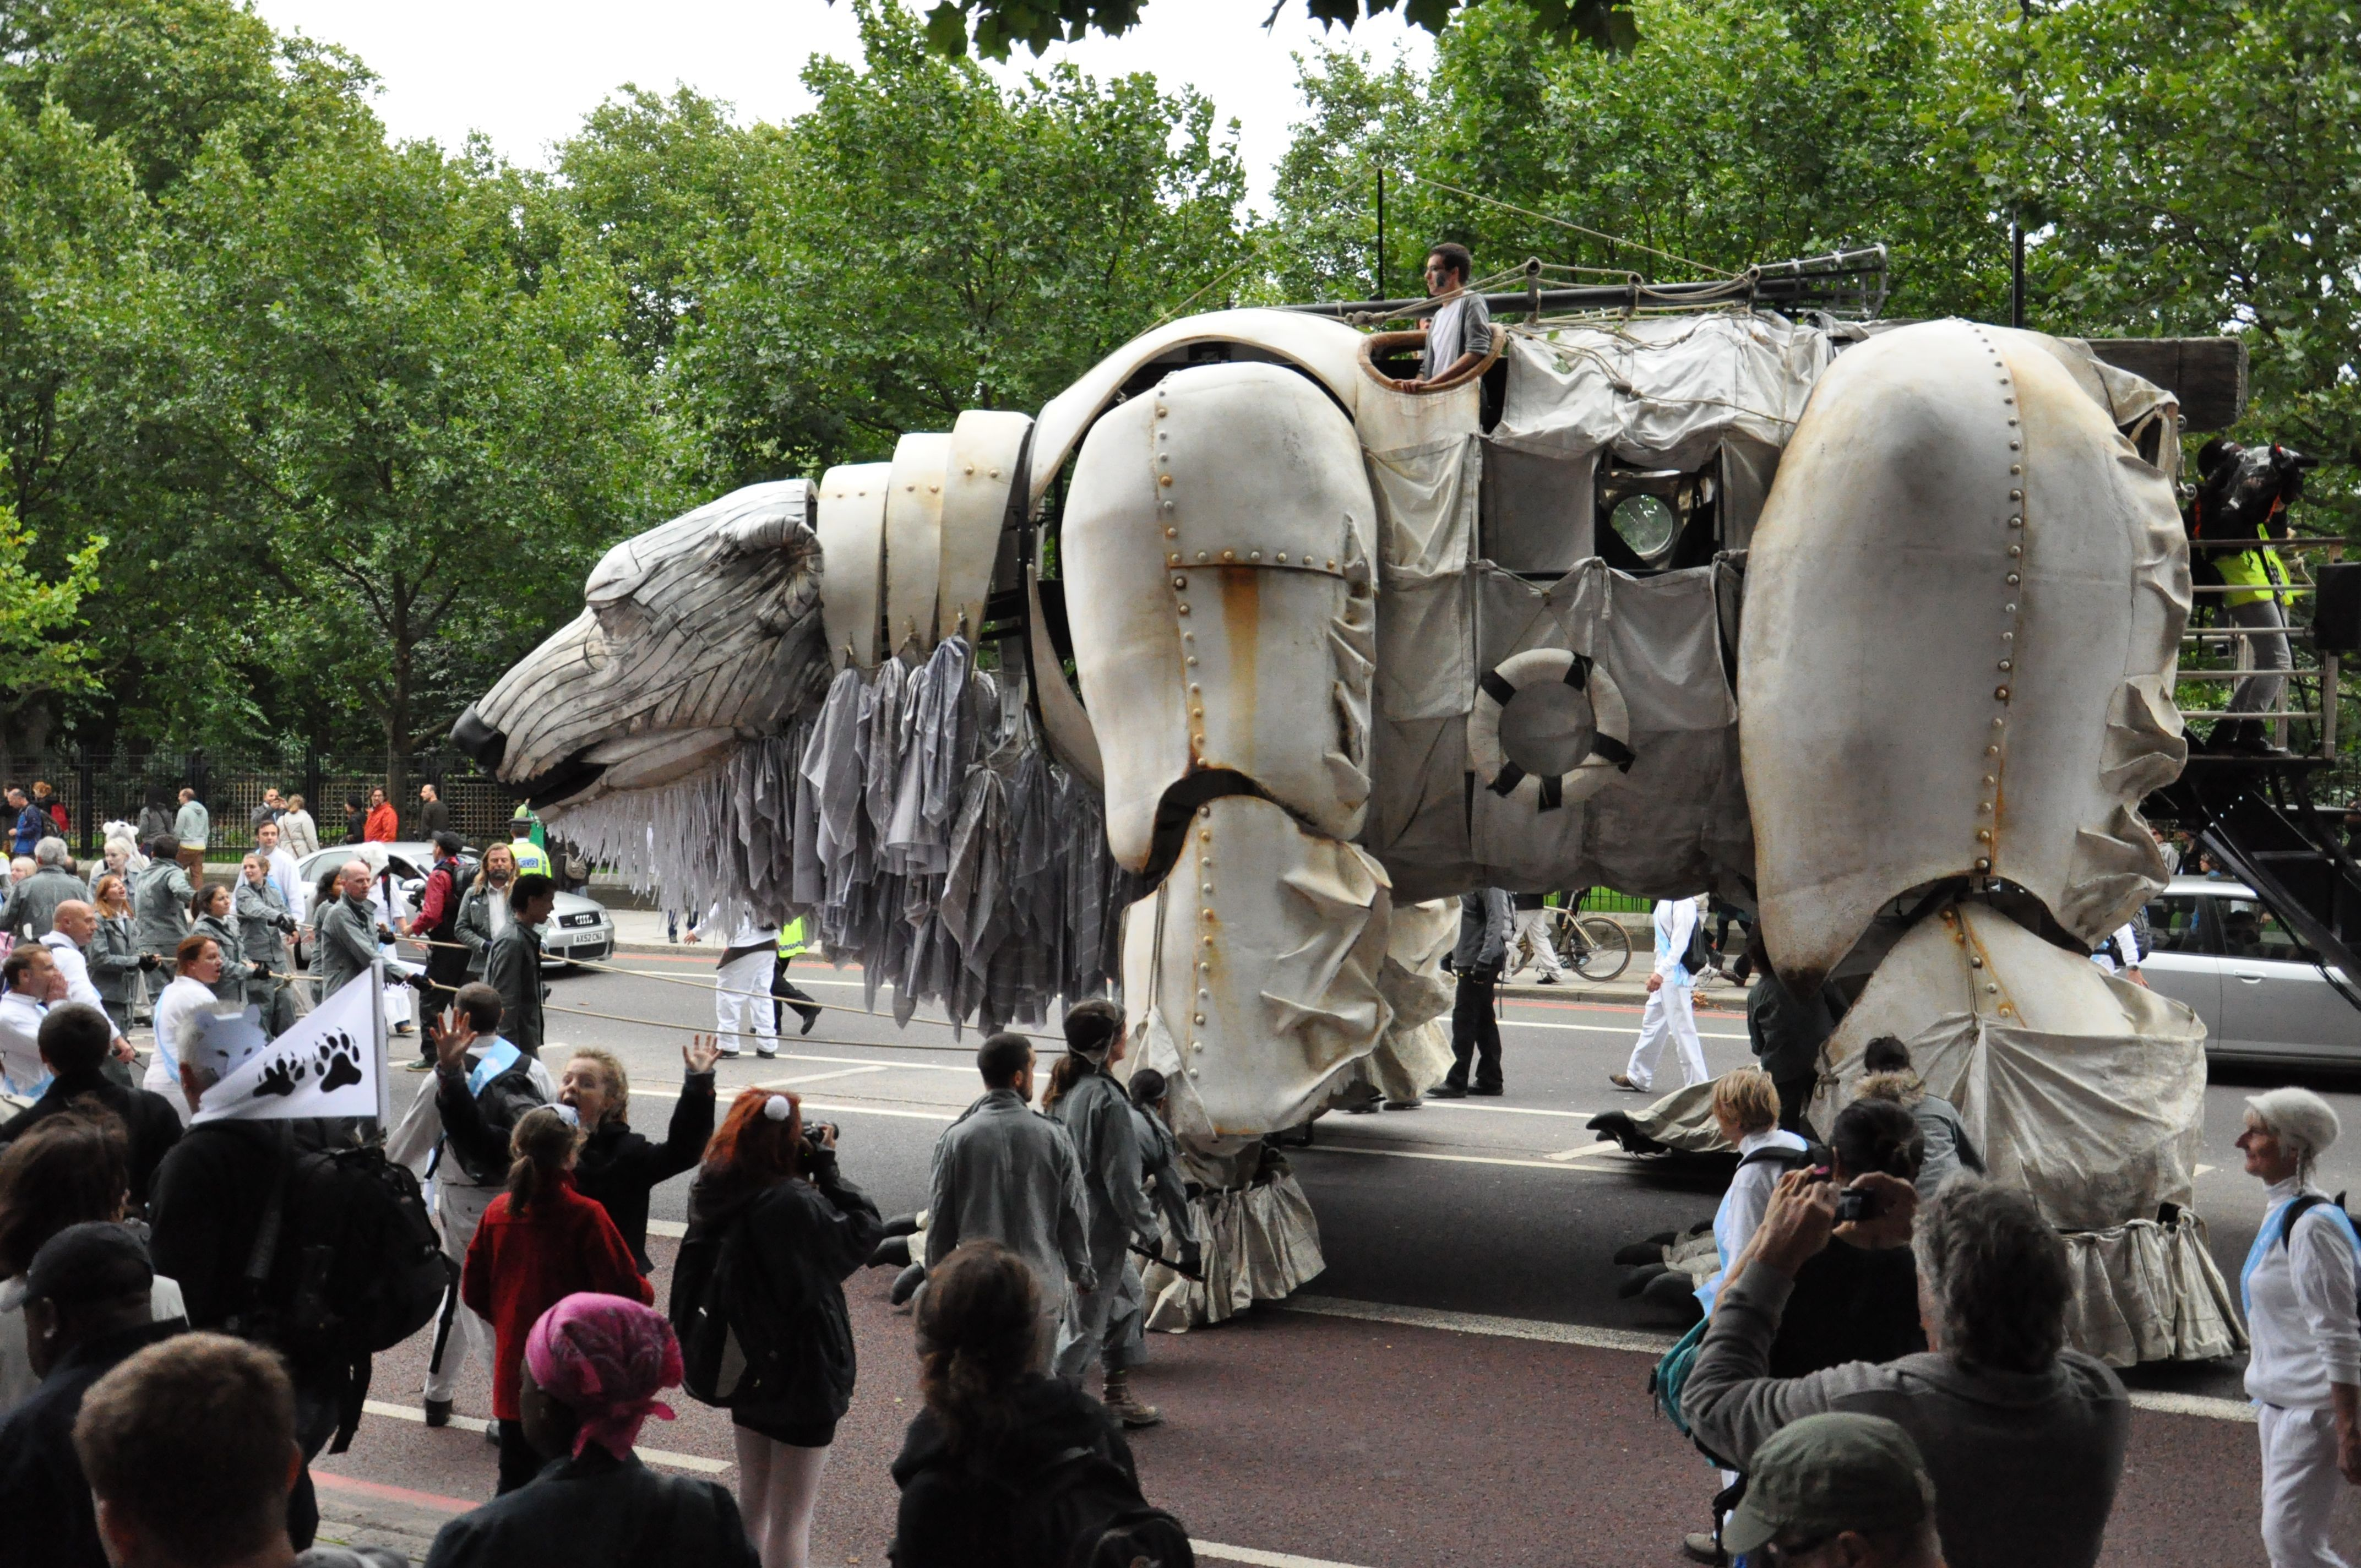 Greenpeace Campaign Action Greenpeace A Giant People Powered Polar Bear Being Paraded Through Central London Auror Save The Arctic Giant People Polar Bear